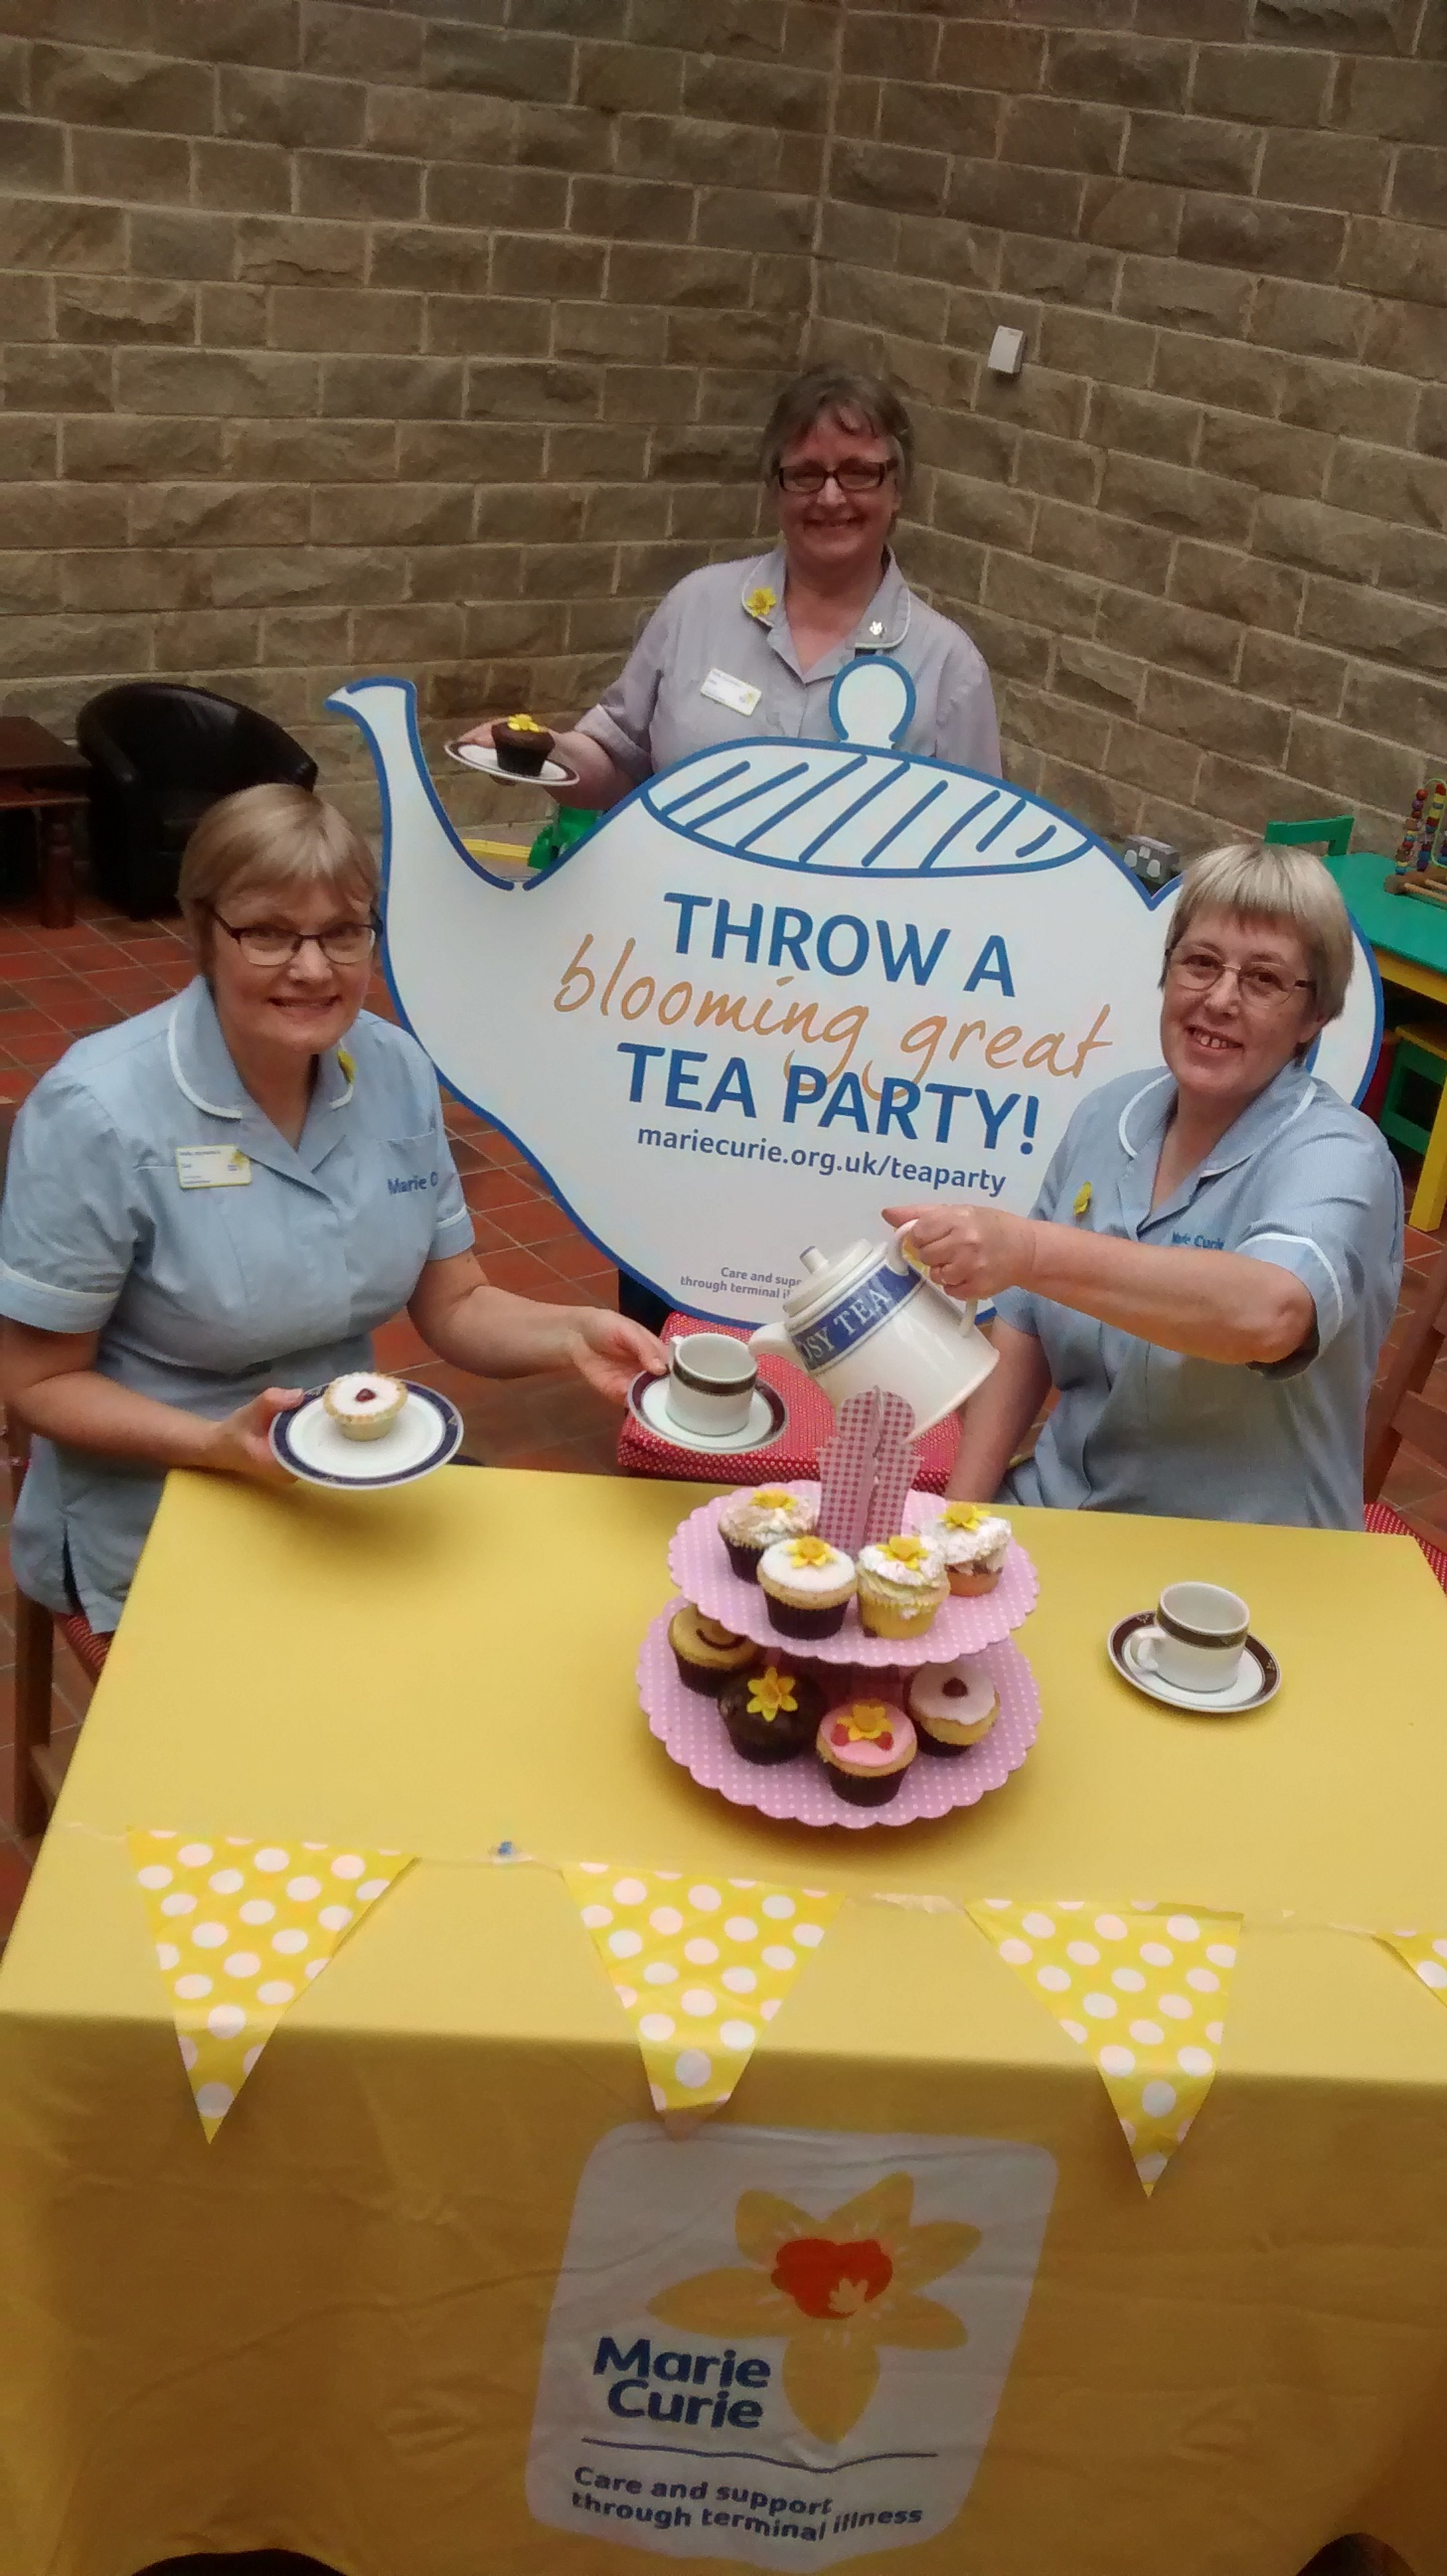 Marie Curie Blooming Great Tea Party nurses